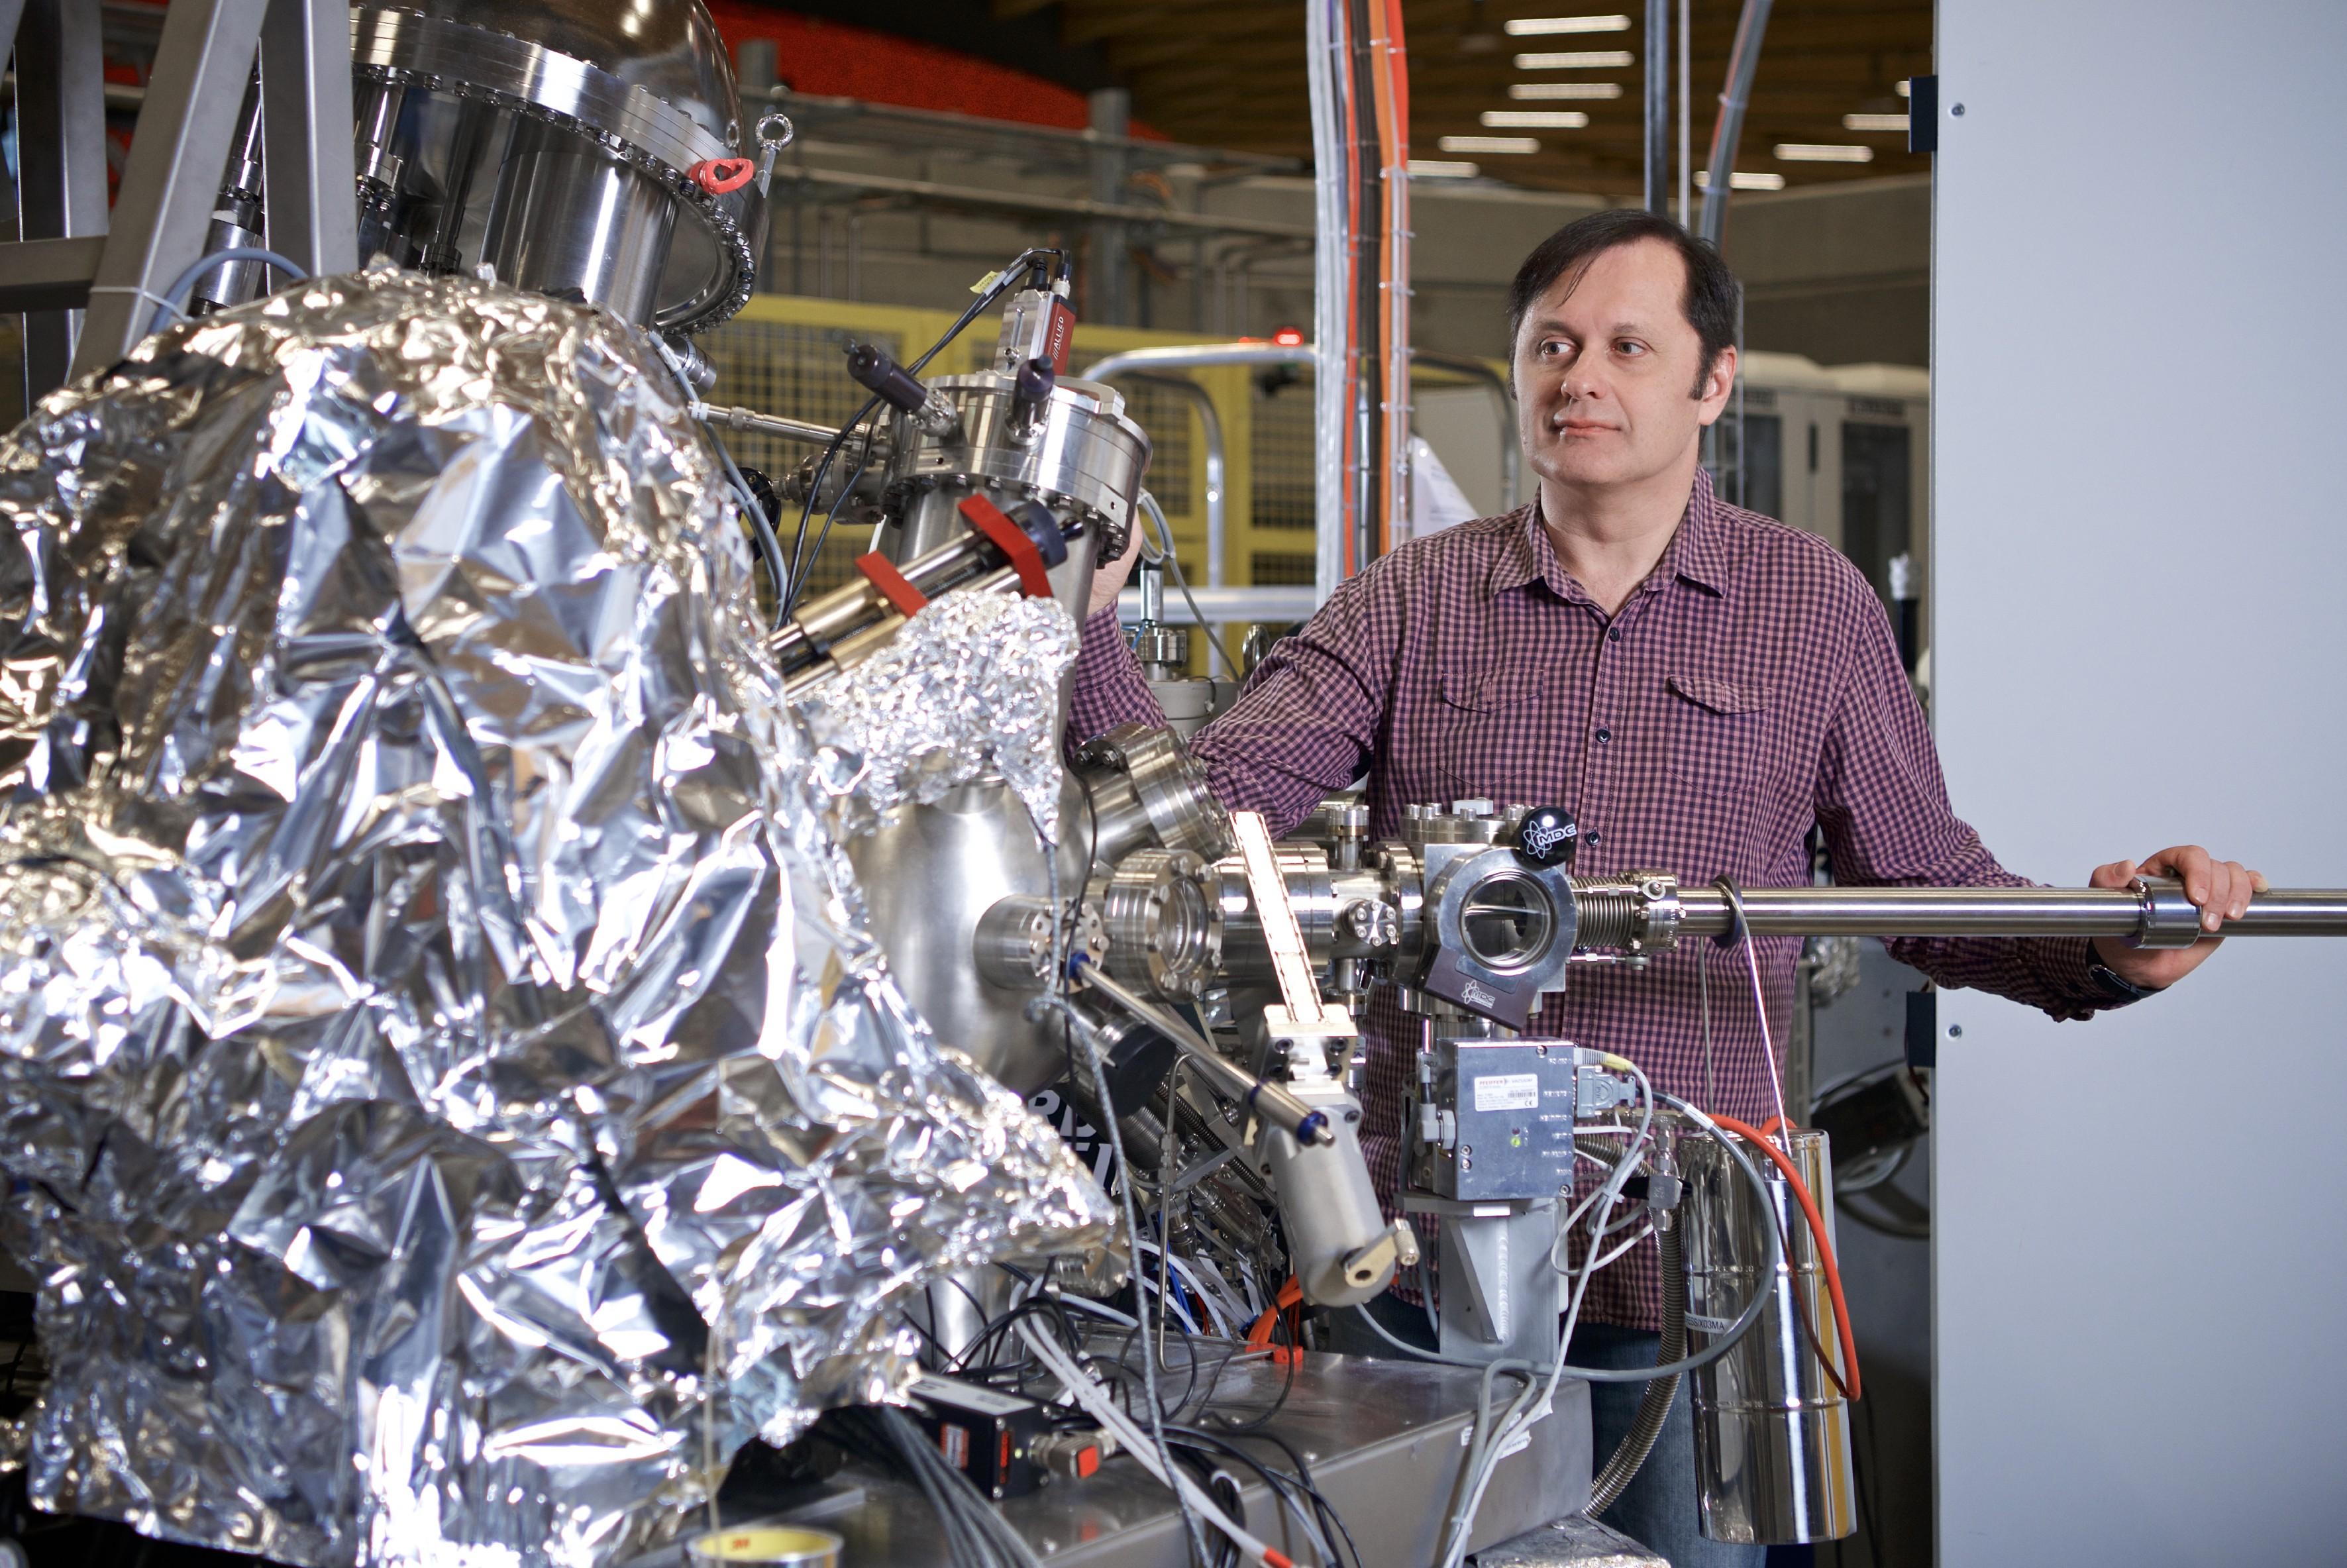 Vladimir Strocov at the ADRESS-Beamline of the Swiss Light Source SLS, where the experiments took place. This ist the world's most intense source for soft X-ray radiation. (Photo: Paul Scherrer Institute/Markus Fischer)